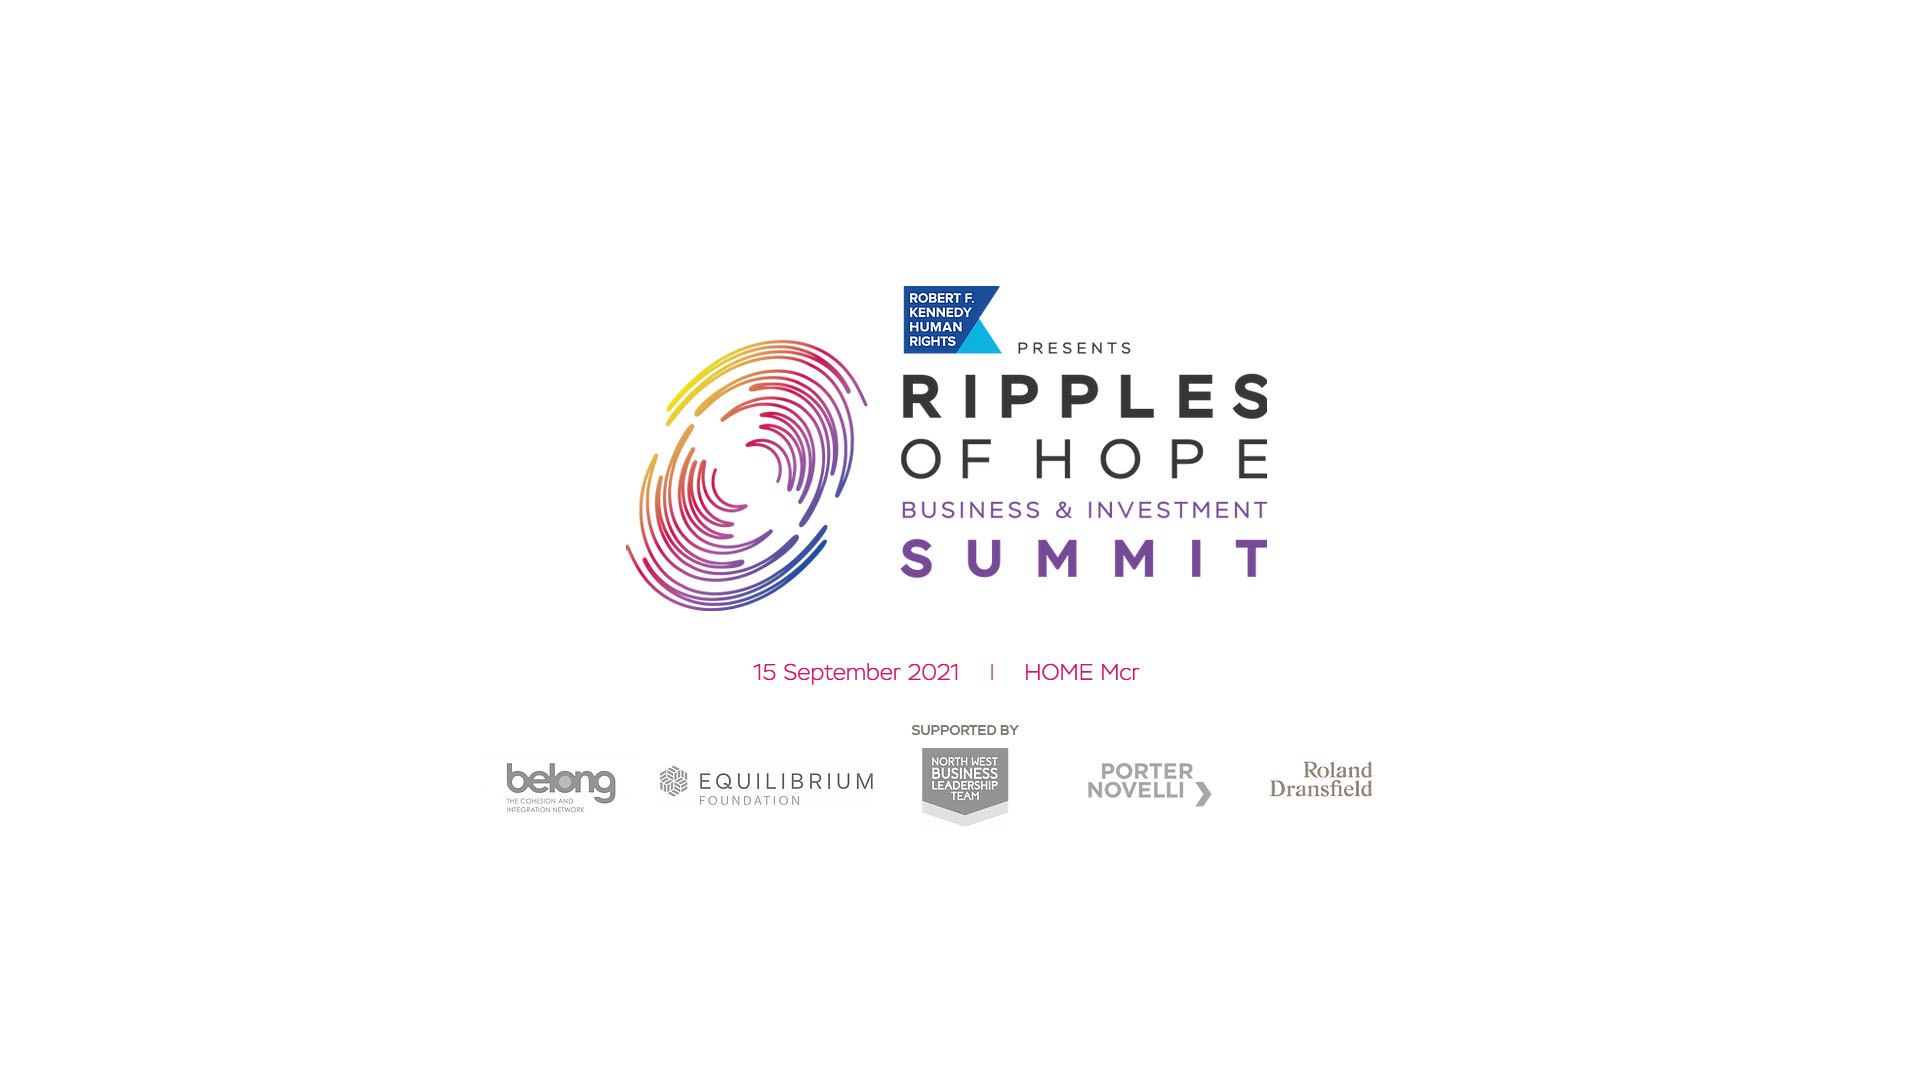 Ripples of Hope Business & Investment Summit